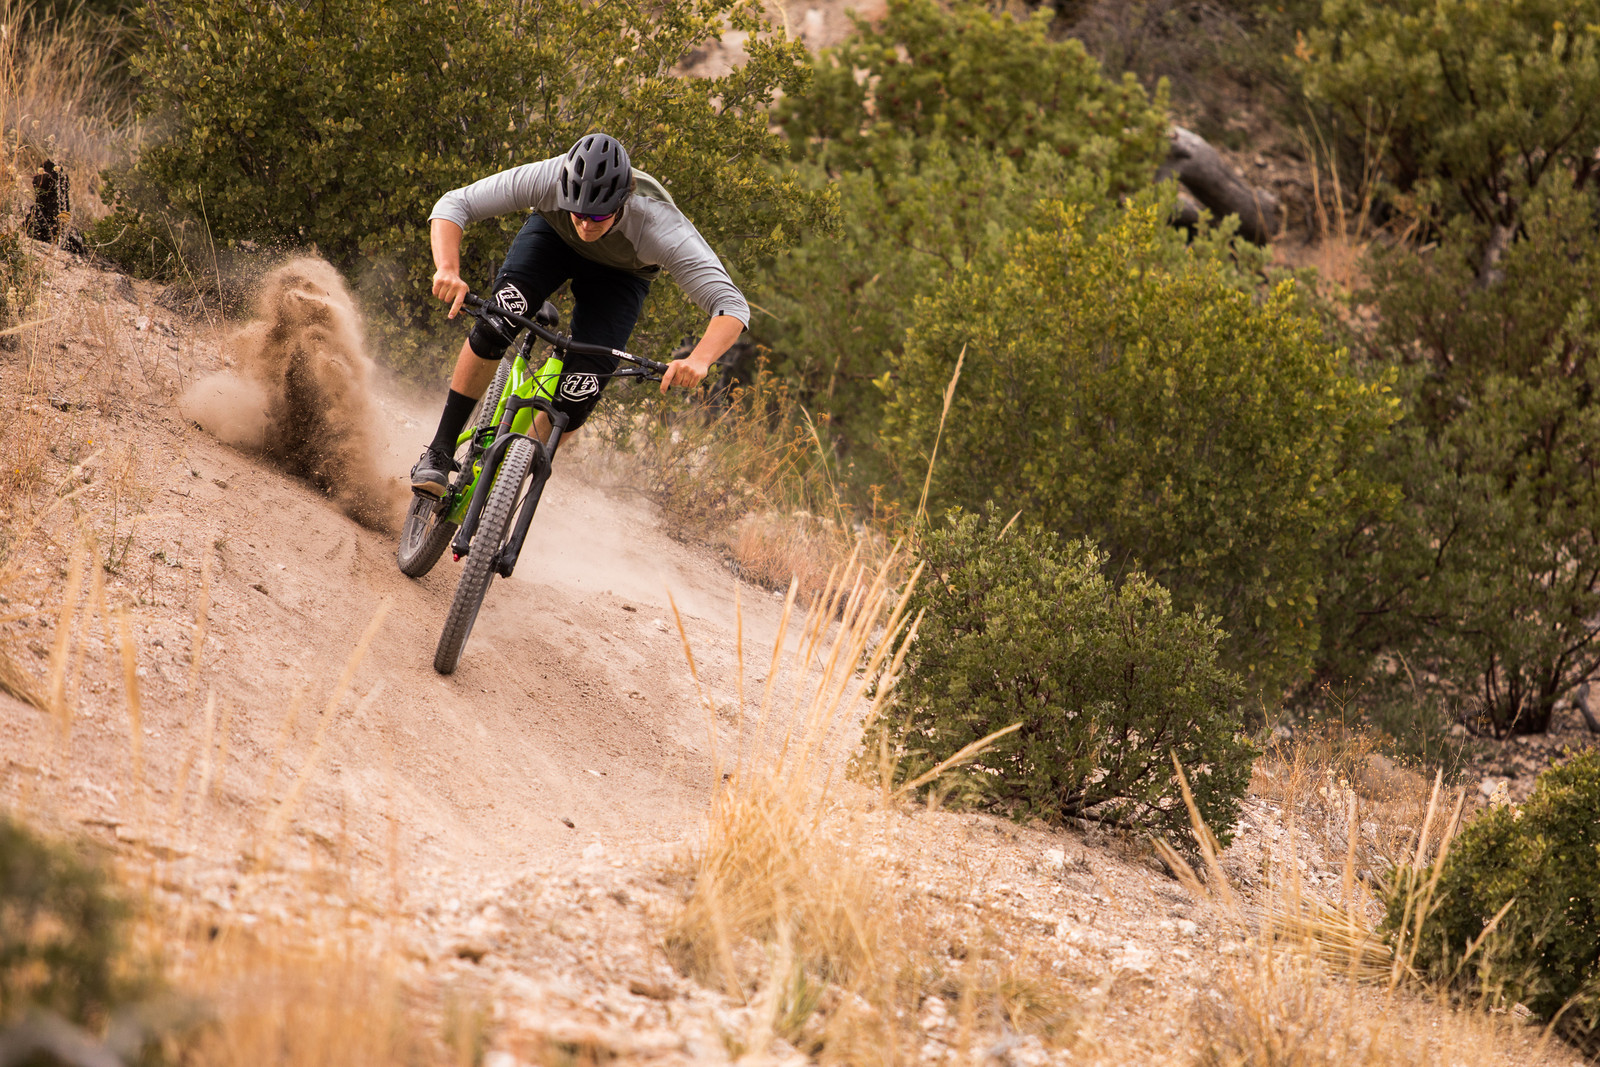 Specialized Enduro Comp 650b - 2017 Vital MTB Test Sessions - Specialized Enduro Comp 650b - 2017 Vital MTB Test Sessions - Mountain Biking Pictures - Vital MTB